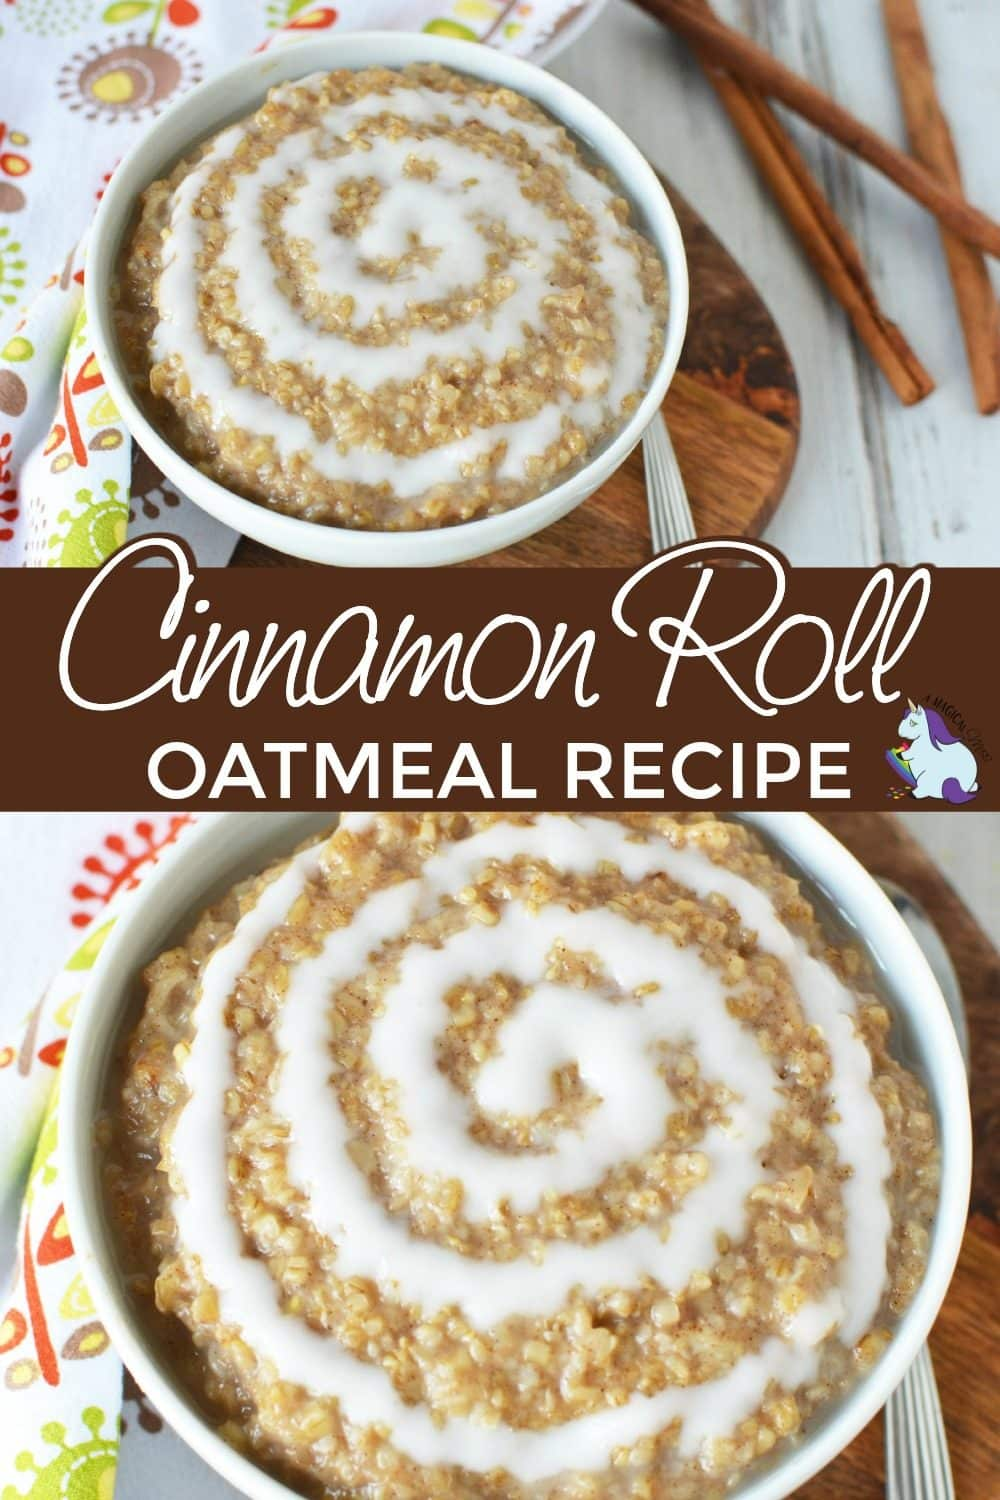 Bowls of cinnamon roll oat meal sitting on a table